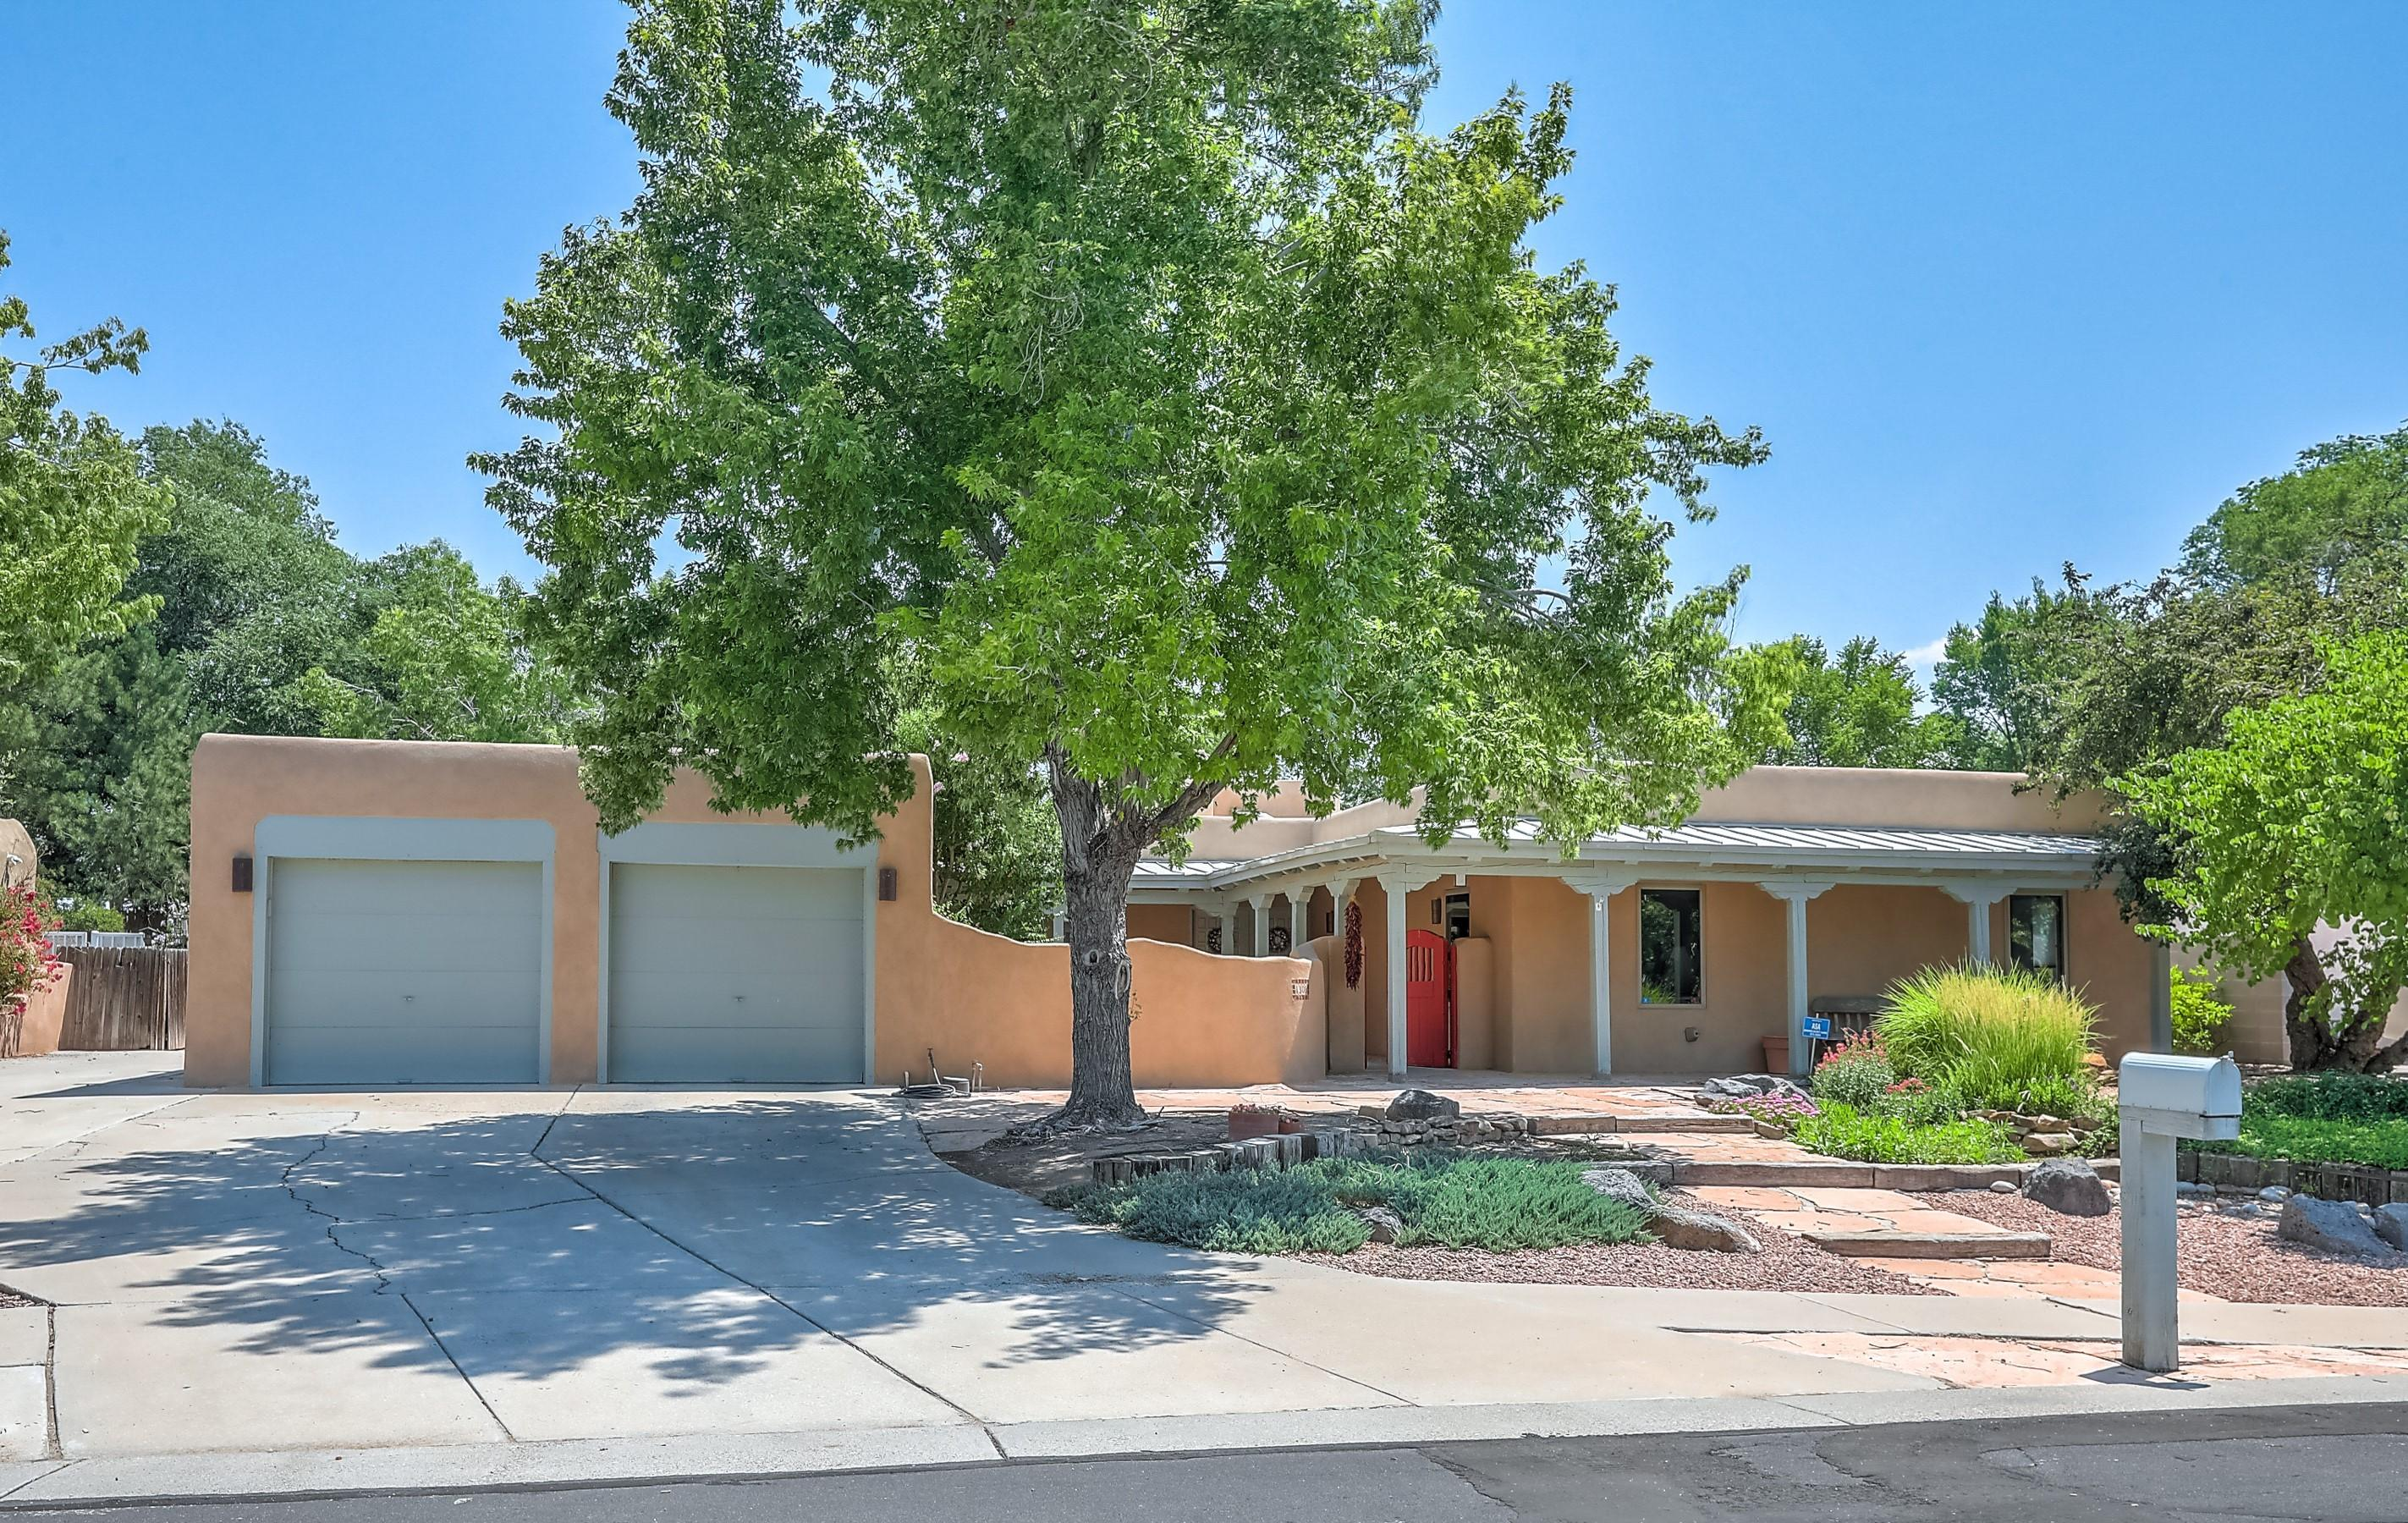 Lush property located in the desirable North Valley neighborhood of Matthew Meadow!  Much beloved pueblo style home of local artist includes an attached studio. Buyers will fall in love with the park like setting, brimming with color from flowers, trees and greenery.  Courtyard entry with stone walkway and open beam porch with corbels. Double doors open to light & bright floorplan with charming accents throughout, including tile & brick floors, skylights, & kiva fireplace. Modern kitchen with Stainless Steel appliances, plenty of cabinets, a large picture window looking to the garden and a pass-through to the formal dining room. Generous owner's suite with large custom walk-in closet, dual sink vanity, and water closet. Office with 3/4 bath could double as excellent guest quarters. (more)